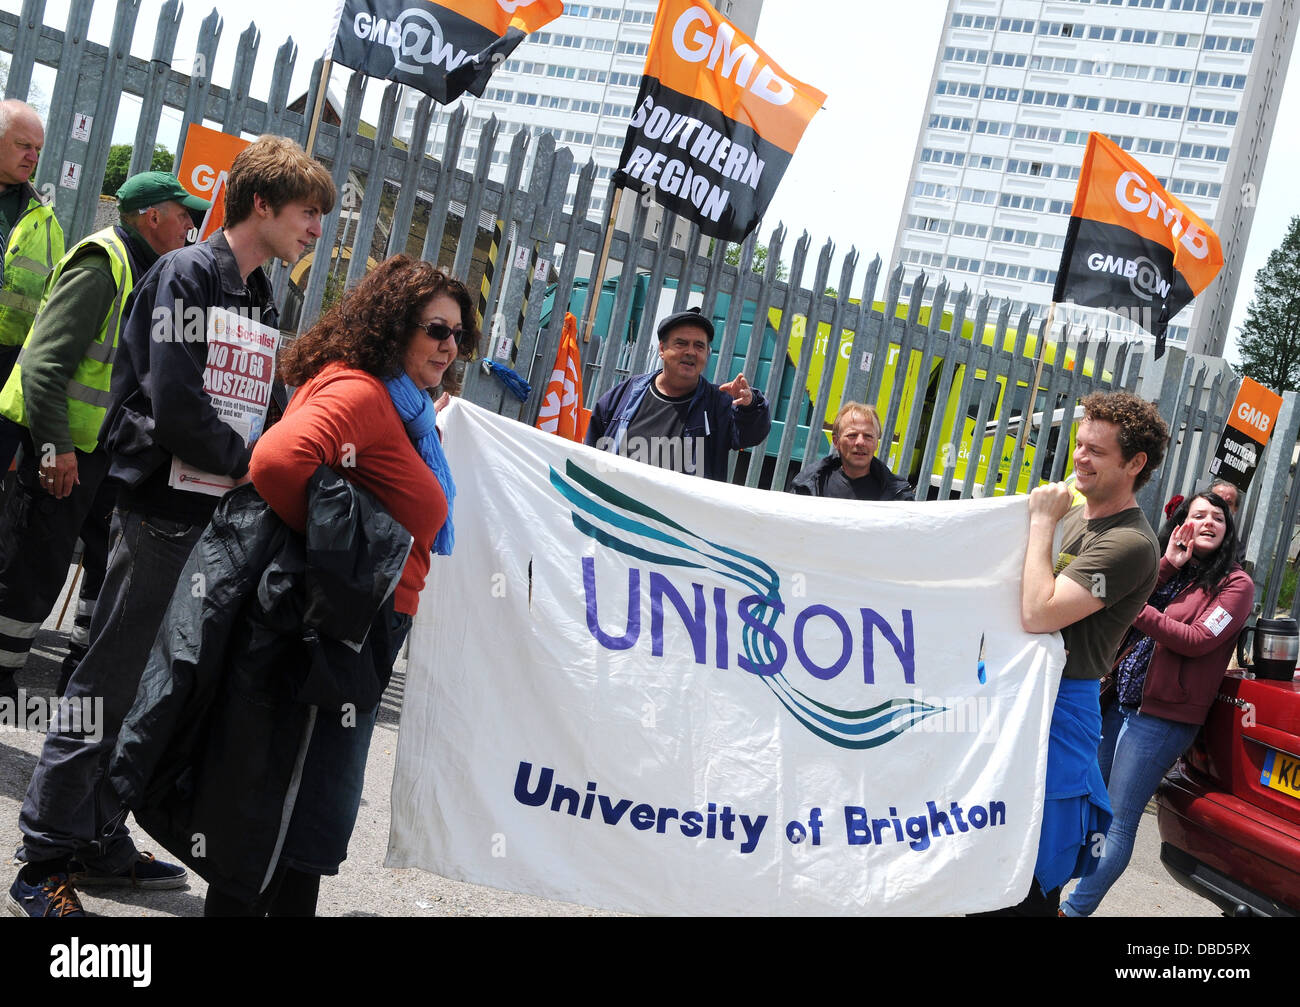 Trade Union Unison shows solidarity with striking GMB workers in Brighton during a protest over proposed pay cuts. - Stock Image